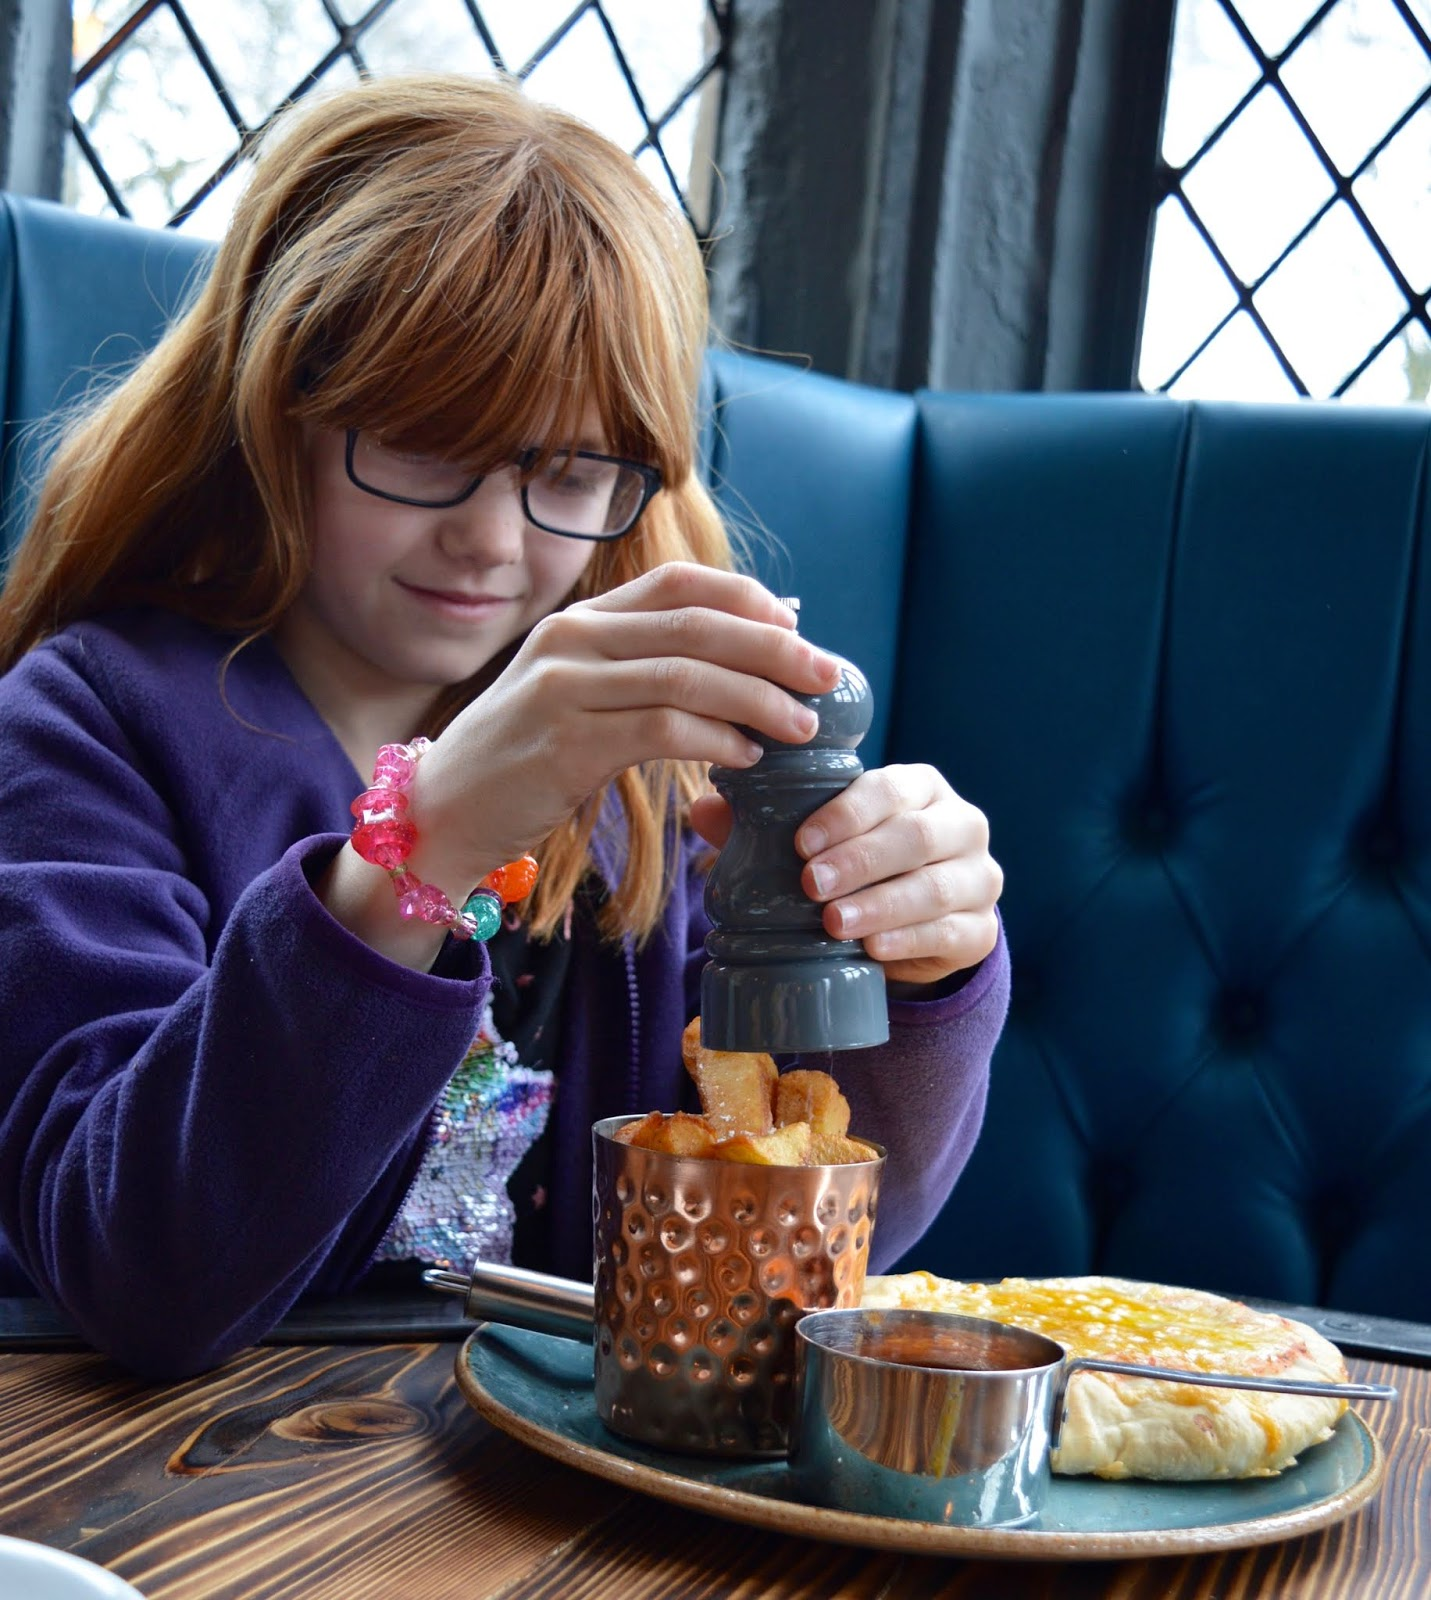 Sunday Lunch, Playgrounds & Birds of Prey at Walworth Castle, Darlington  - kids pizza and chips